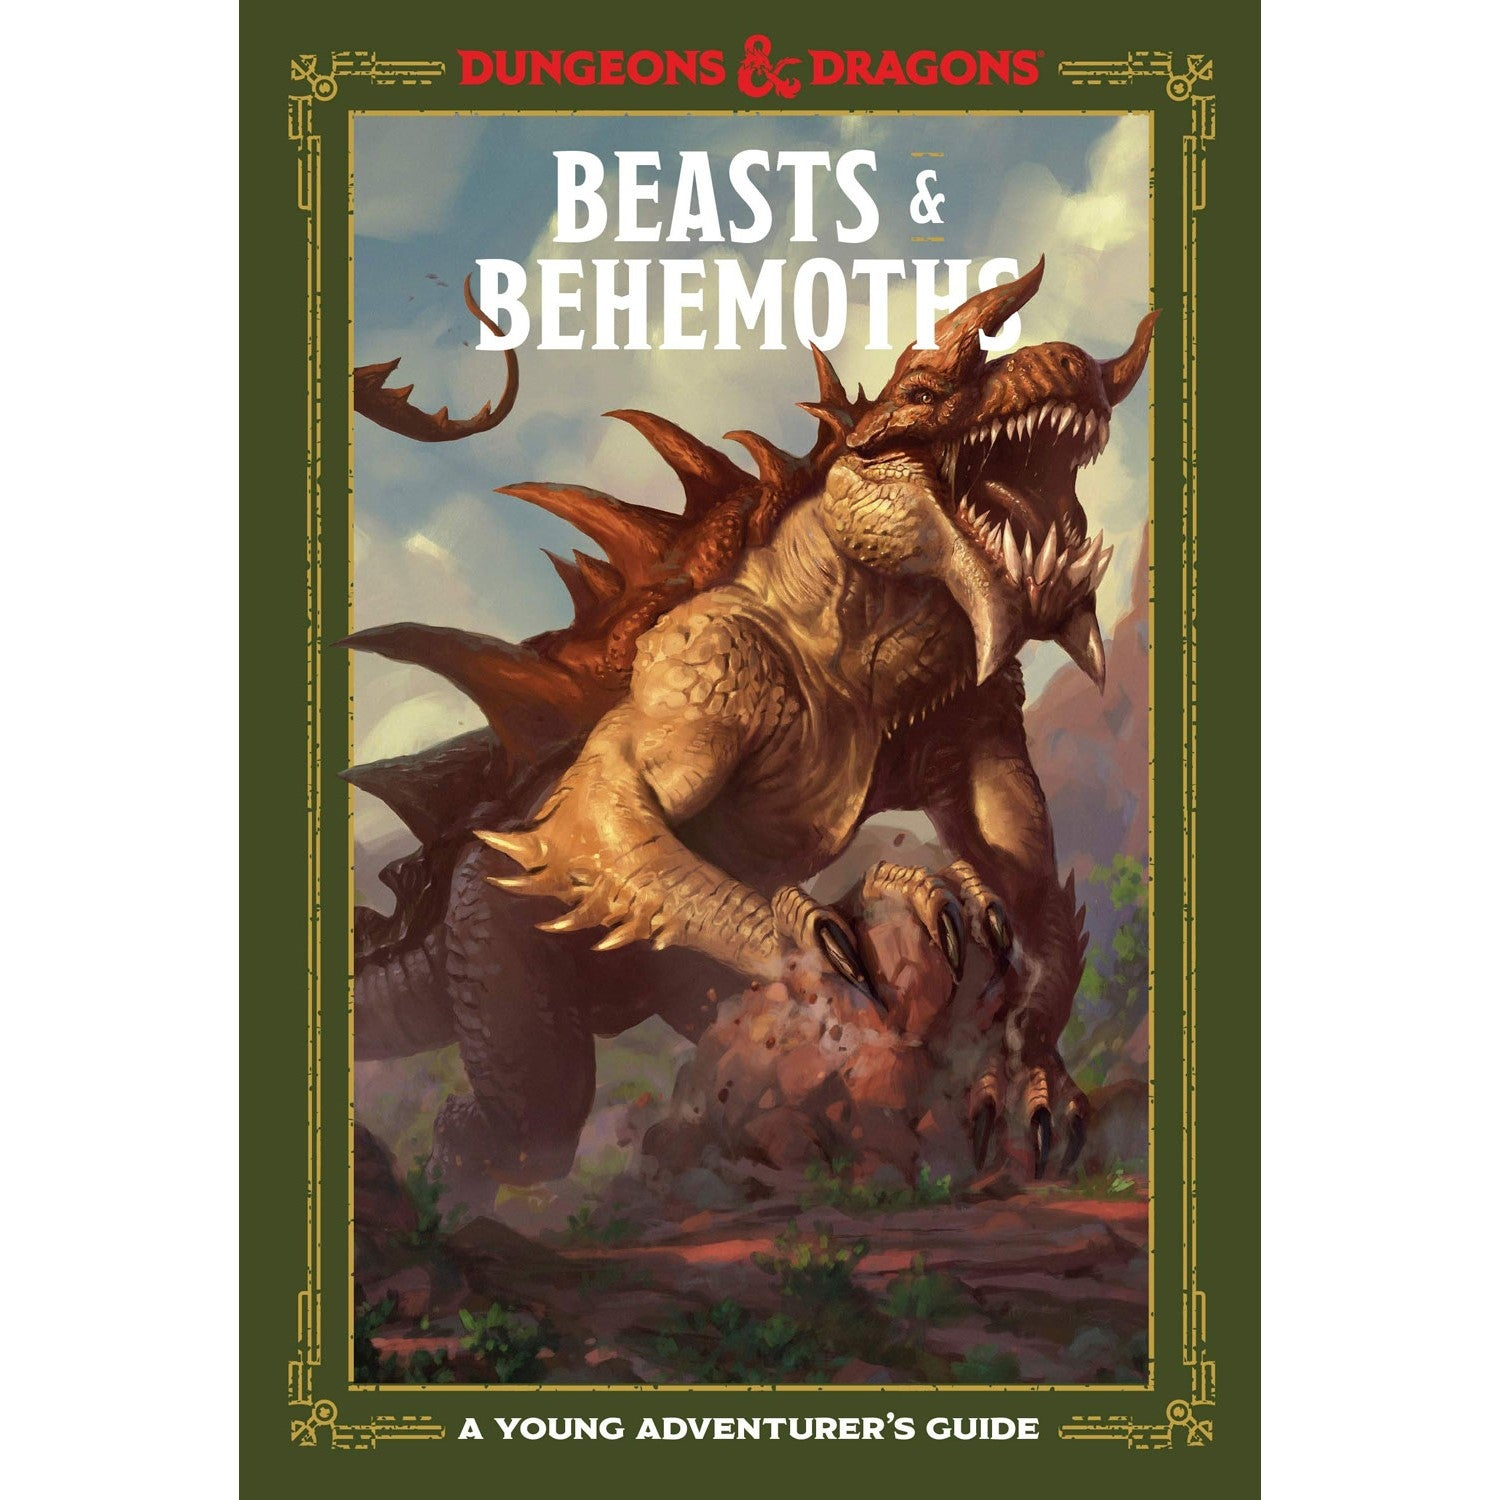 Beasts & Behemoths: A Young Adventurer's Guide